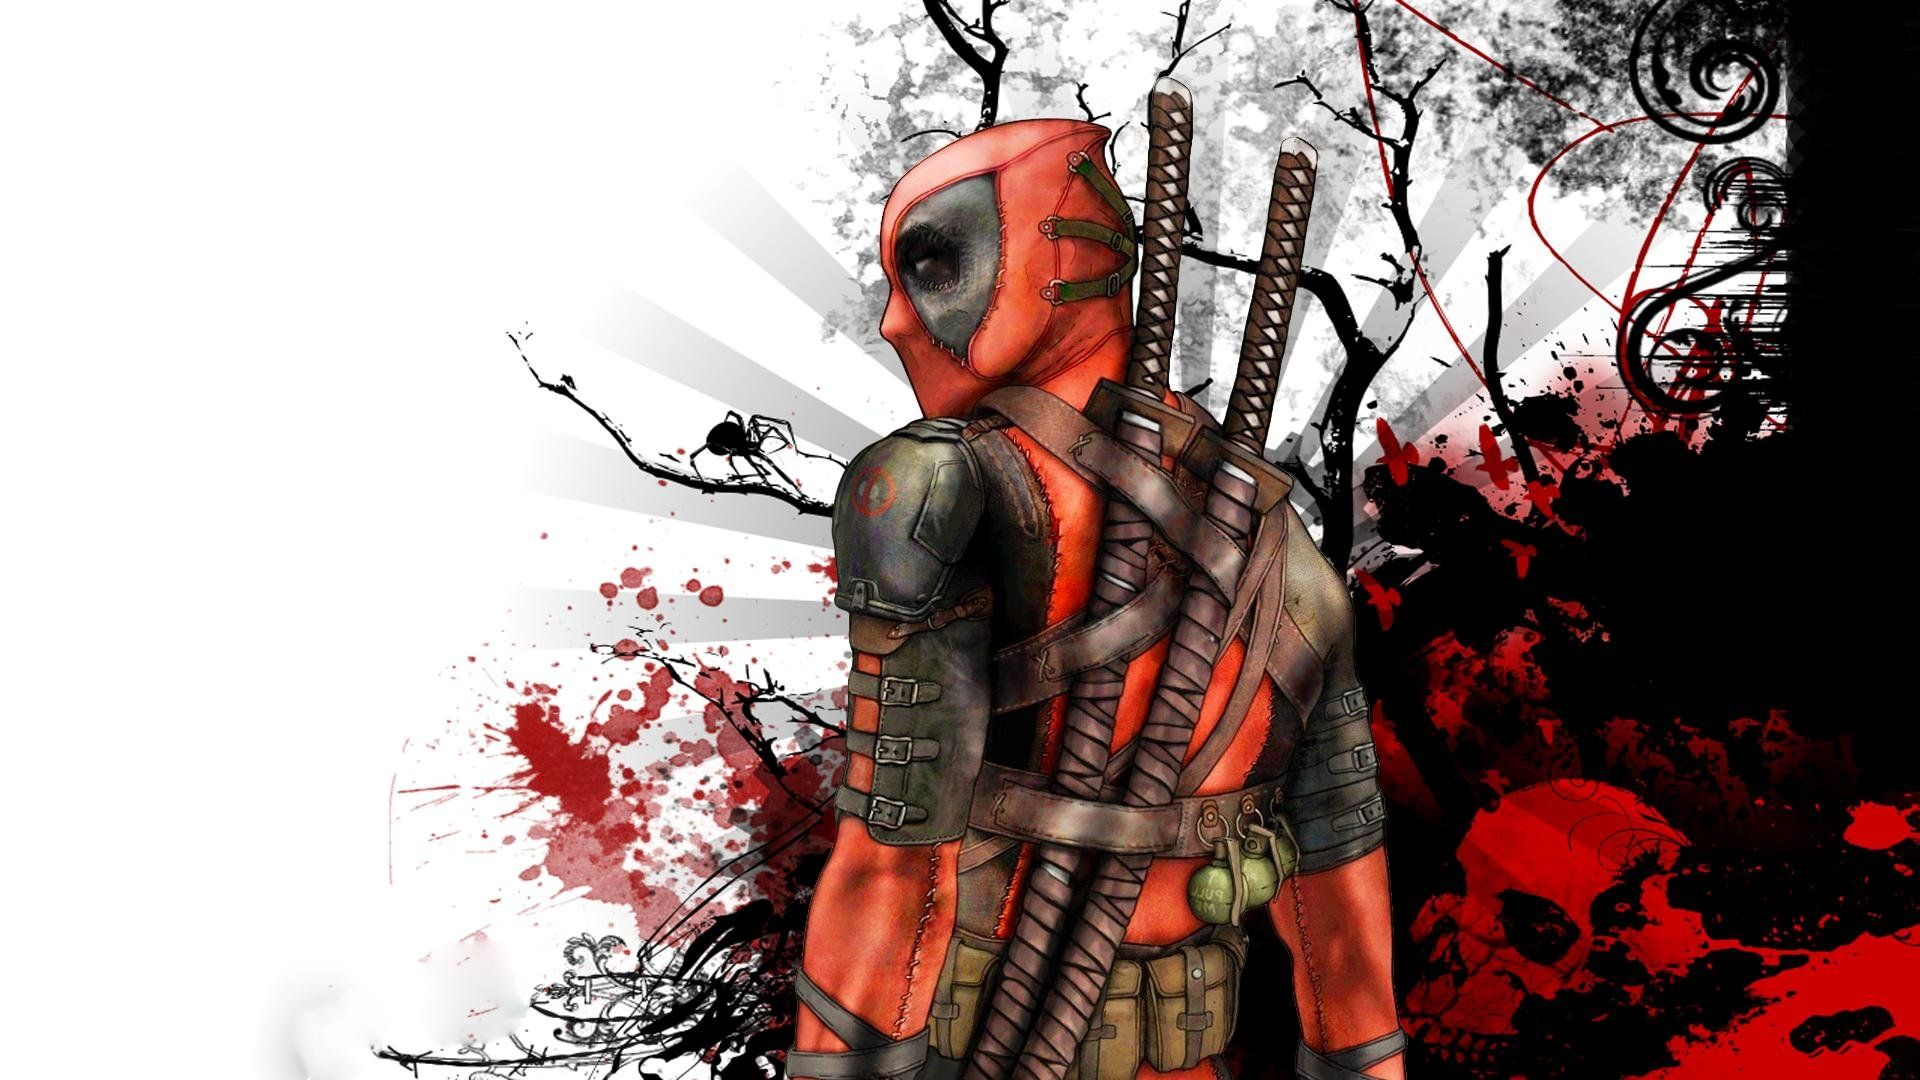 Deadpool Wallpapers Desktop Background For Desktop Wallpaper Jpg 1920 1080